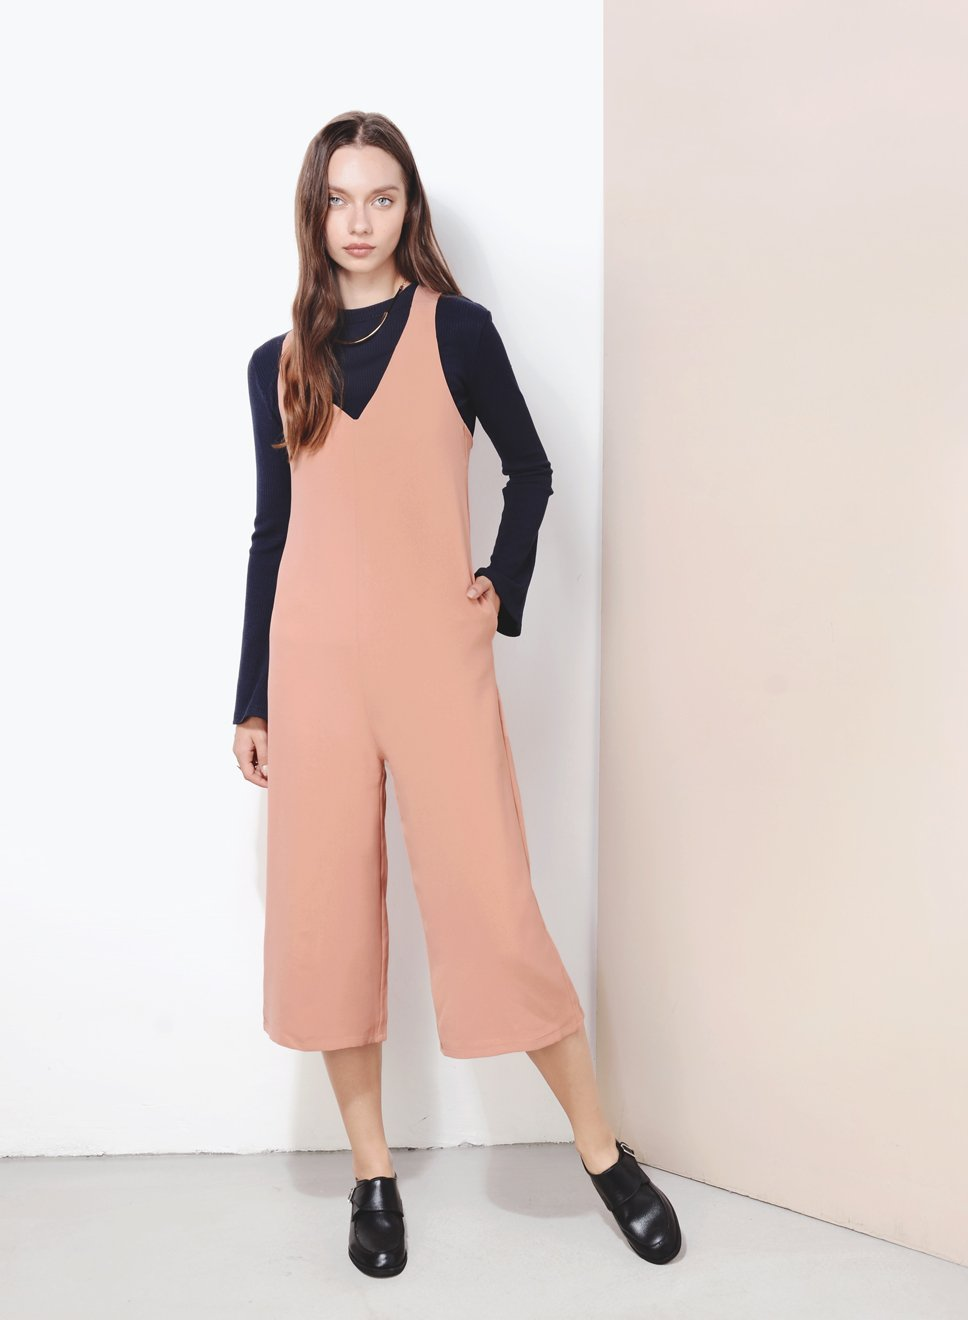 STANDSTILL Cross Back Jumpsuit (Apricot) at $ 22.50 only sold at And Well Dressed Online Fashion Store Singapore